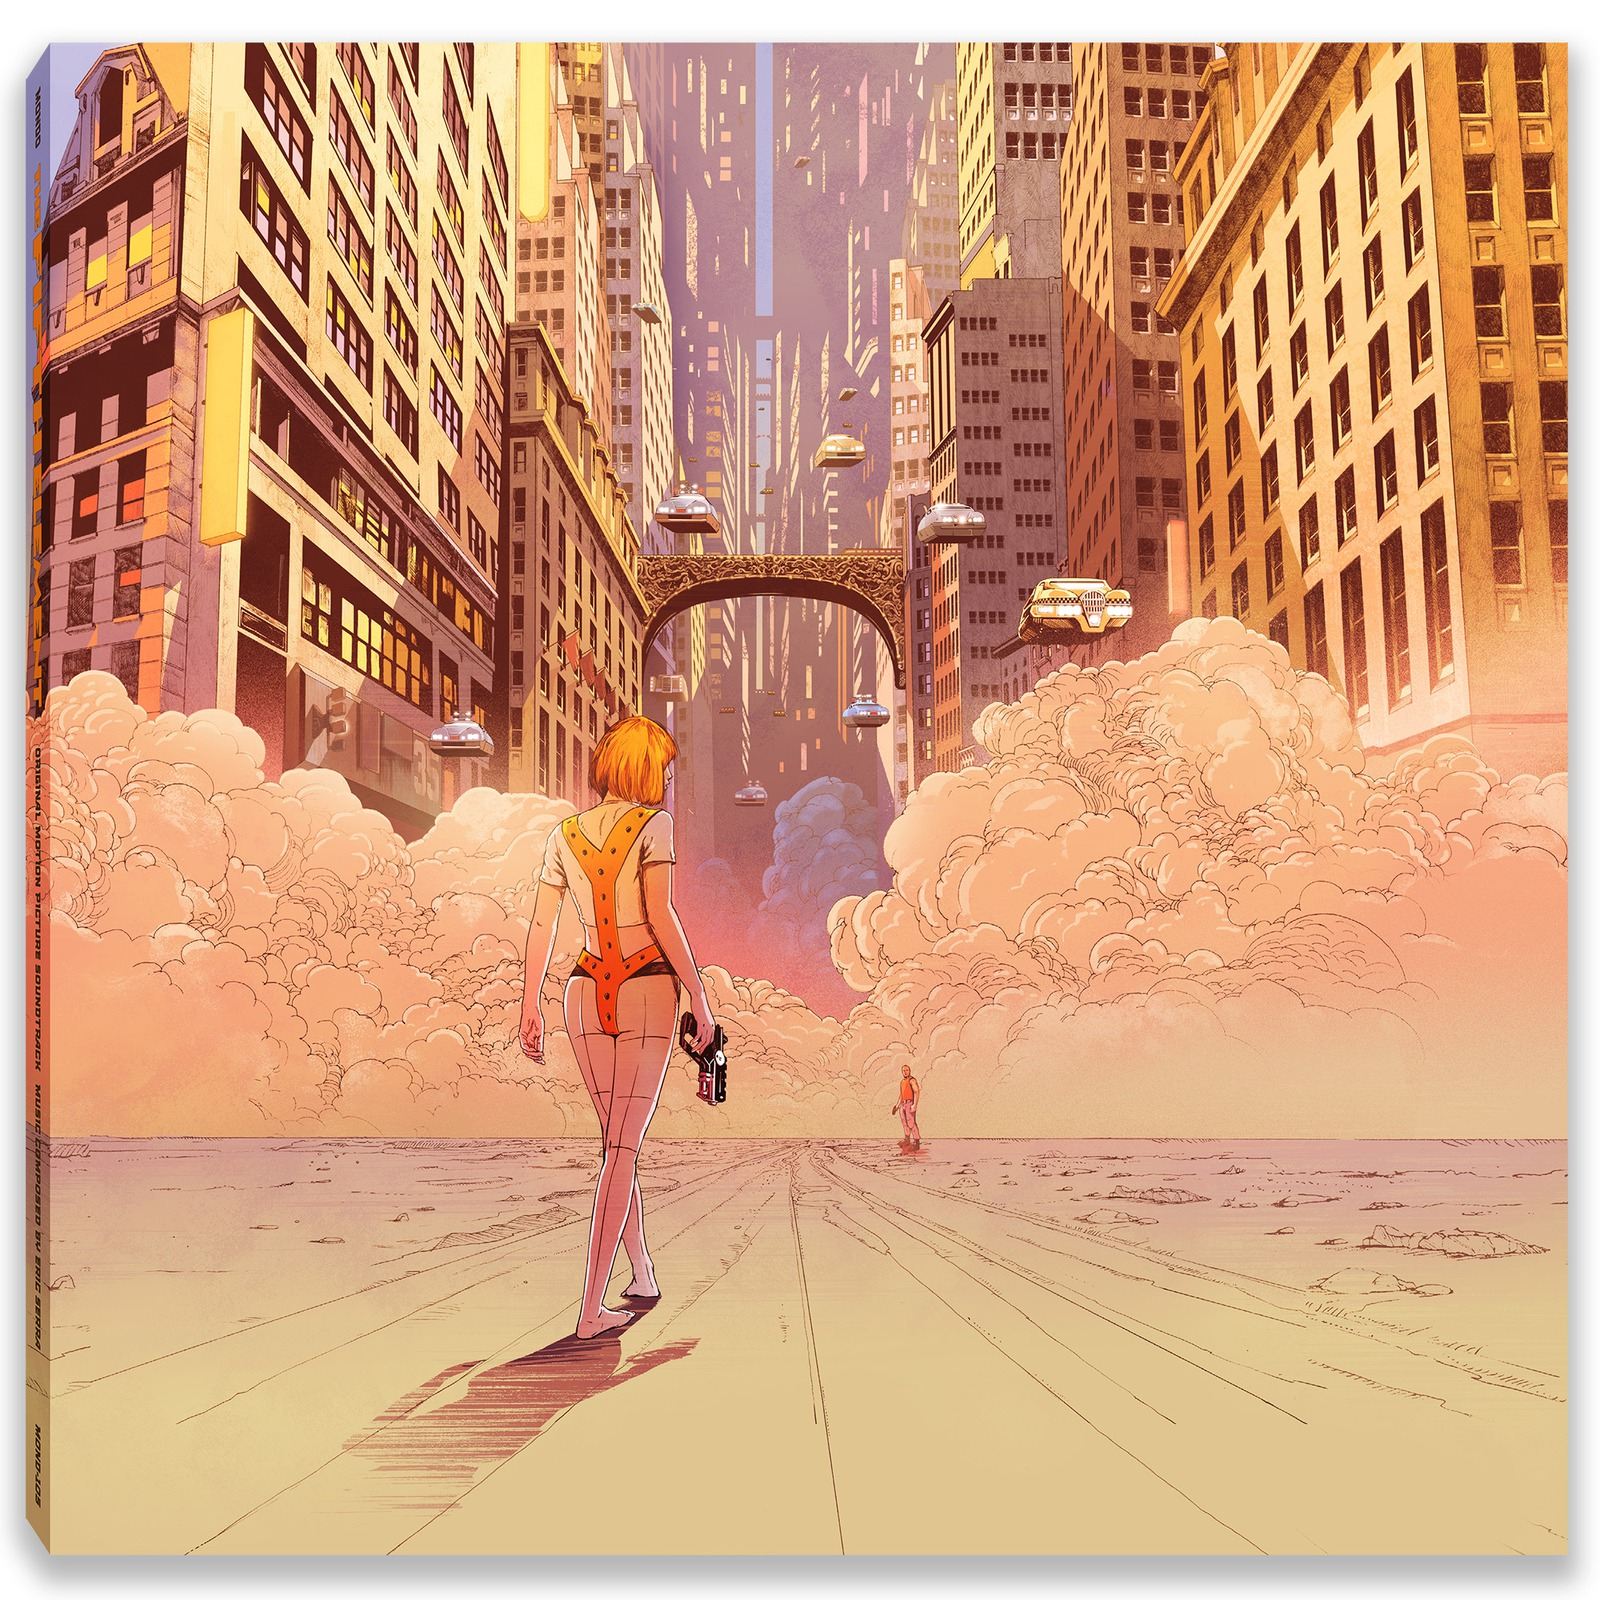 fifth element vinyl cover Wind blows, fire burns, and Mondo announces gorgeous vinyl release of The Fifth Element soundtrack